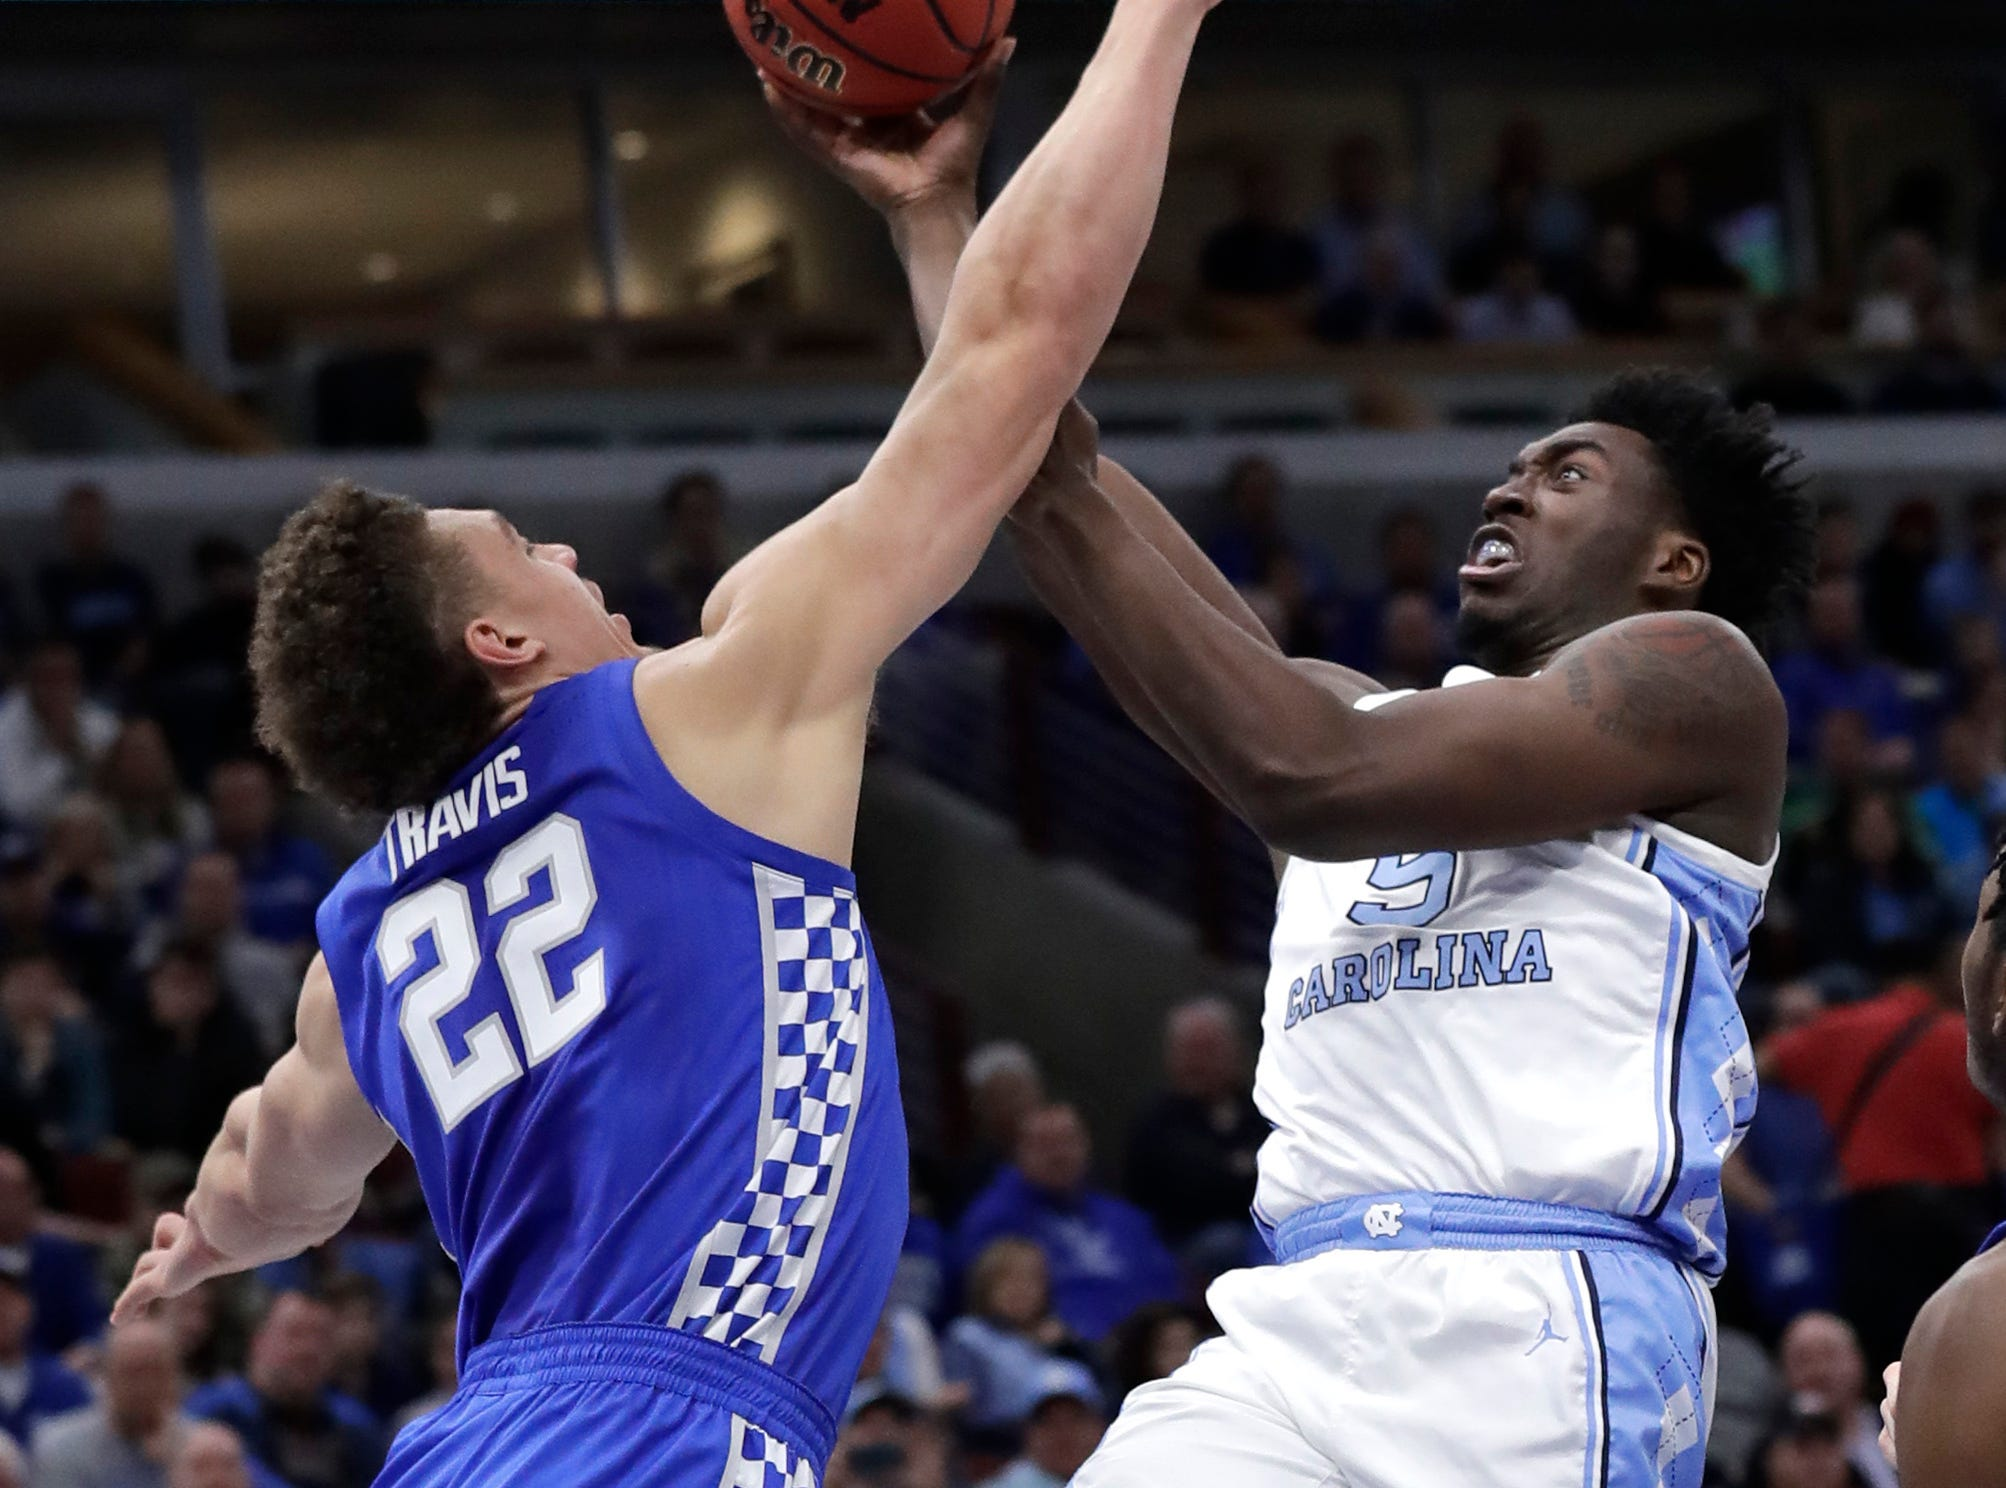 North Carolina forward Nassir Little, right, shoots against Kentucky forward Reid Travis during the first half of an NCAA college basketball game in the fifth annual CBS Sports Classic, Saturday, Dec. 22, 2018, in Chicago. Kentucky won 80-72.